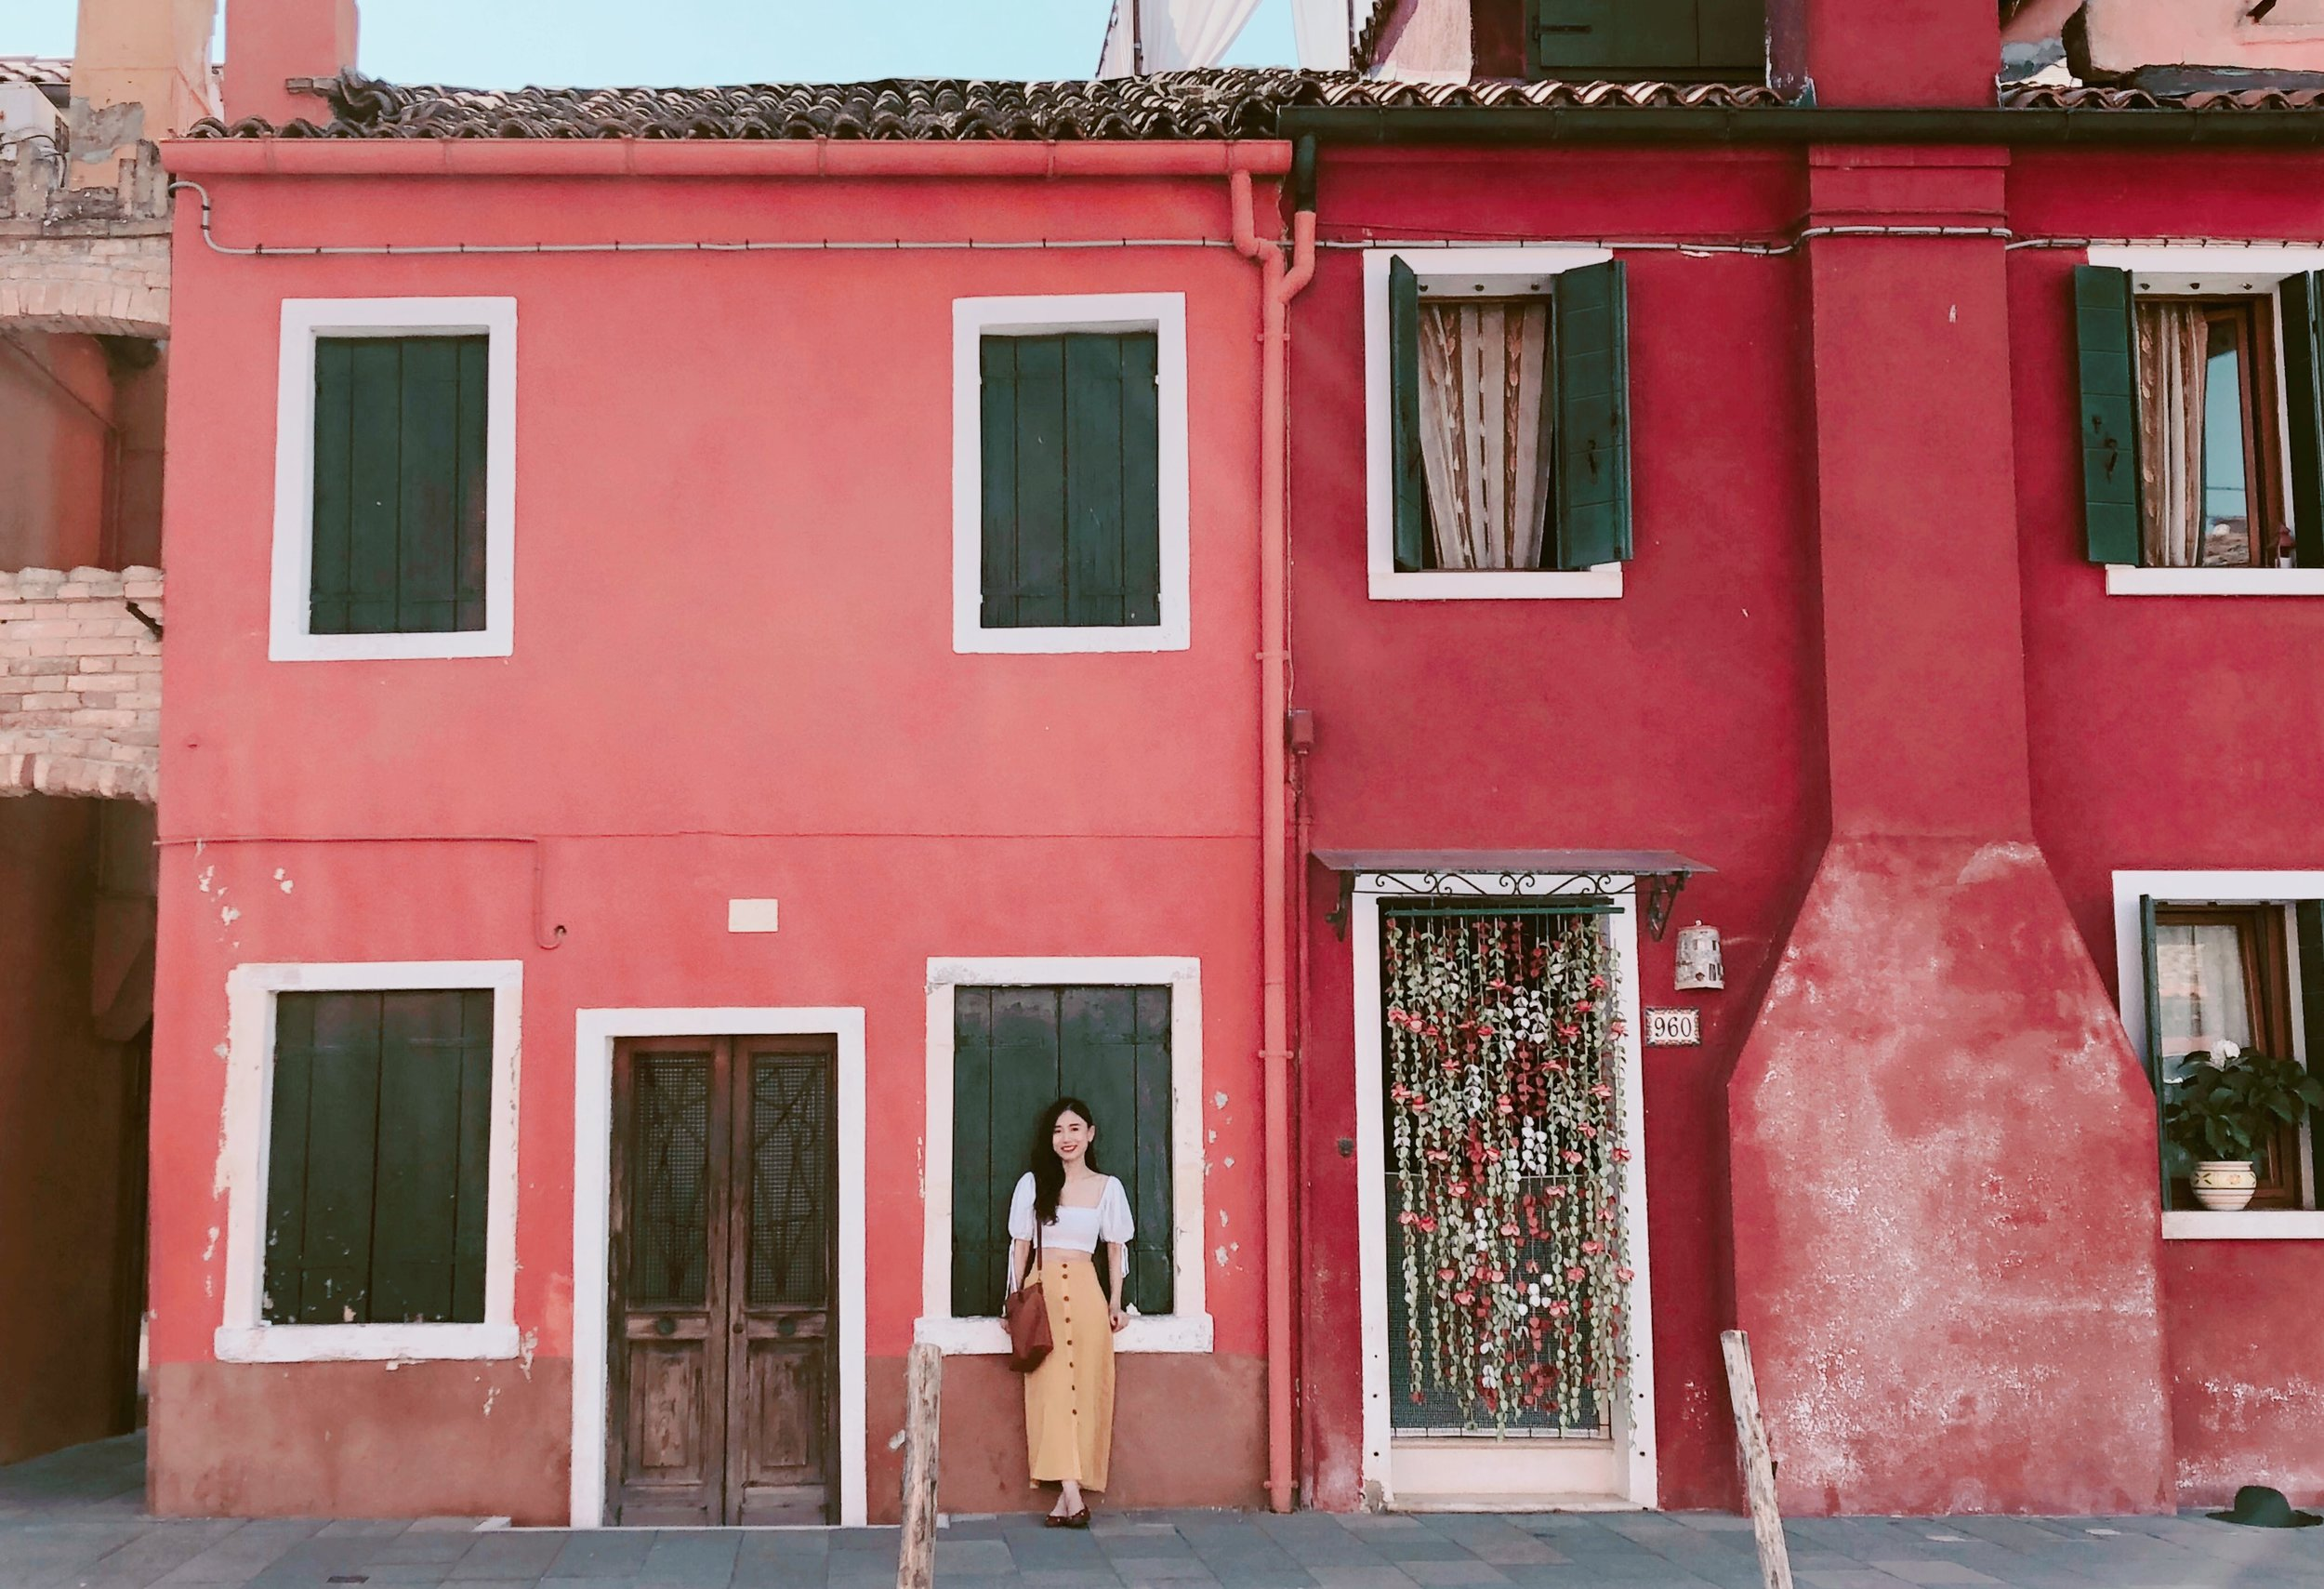 Eggieshop in Burano, Italy